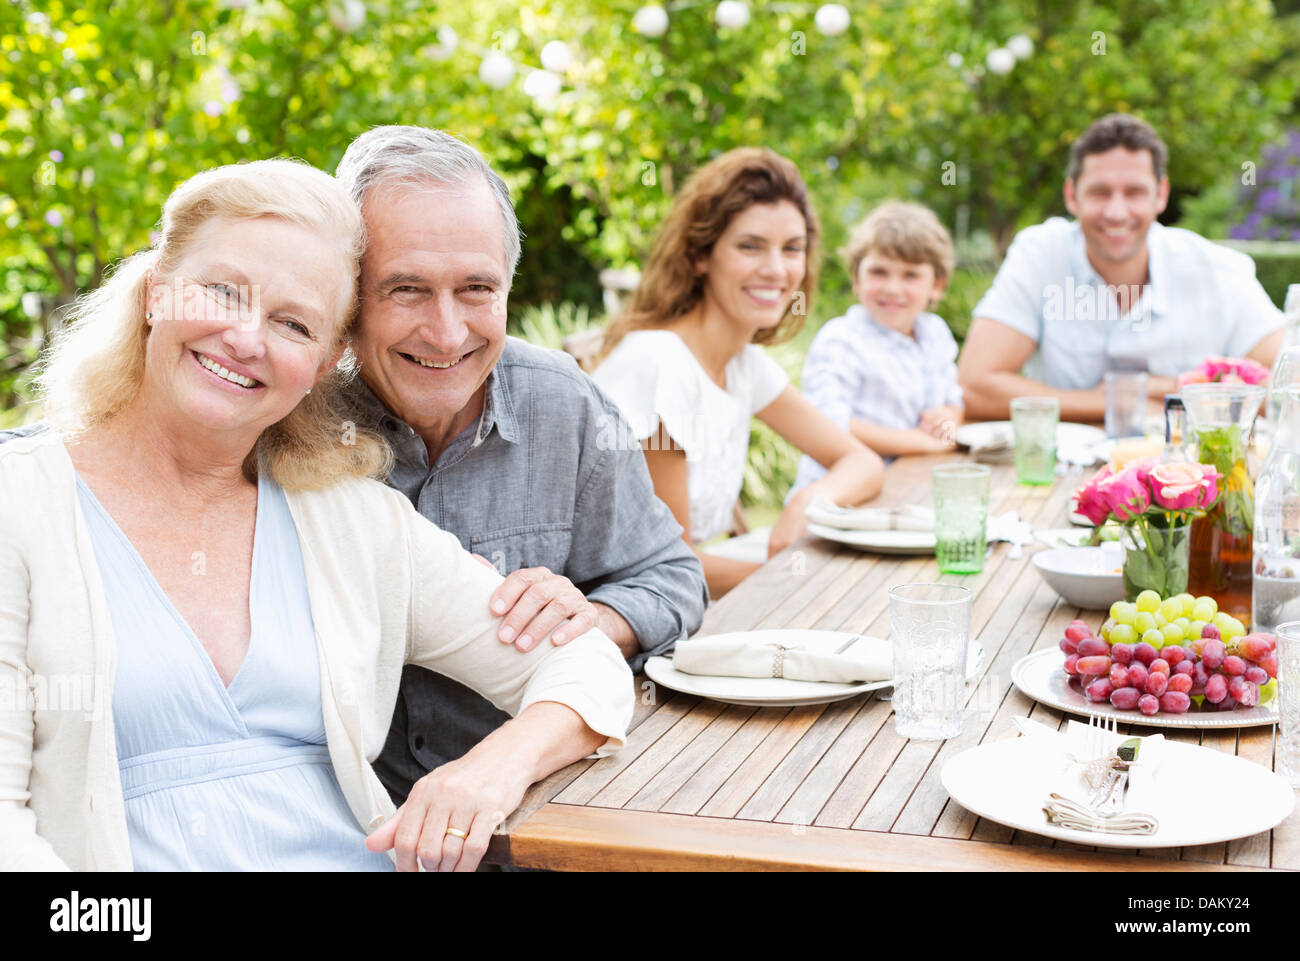 Family smiling at table outdoors - Stock Image